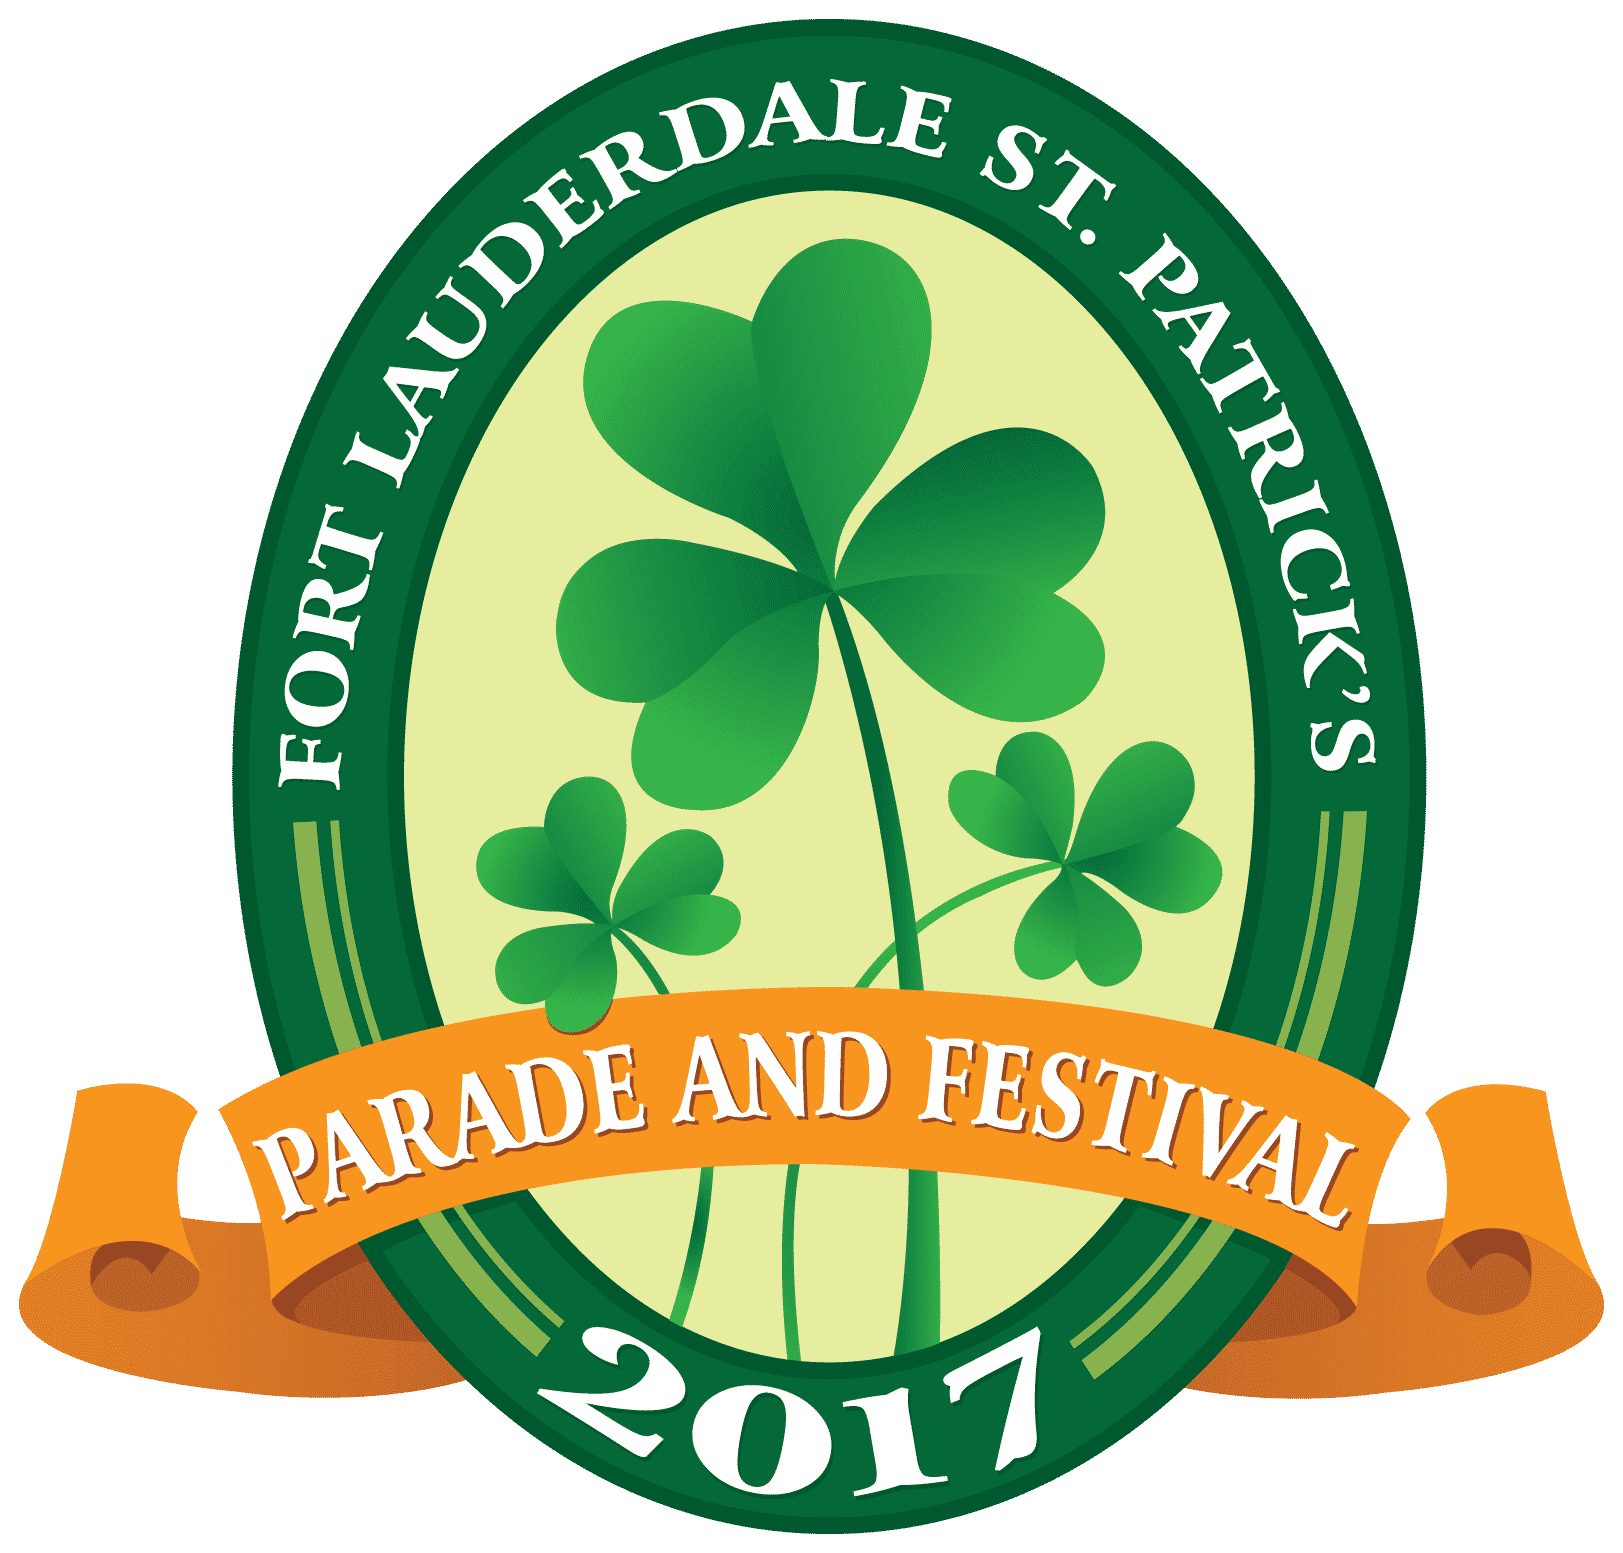 Fort Lauderdale St. Patrick's Day Parade & Festival